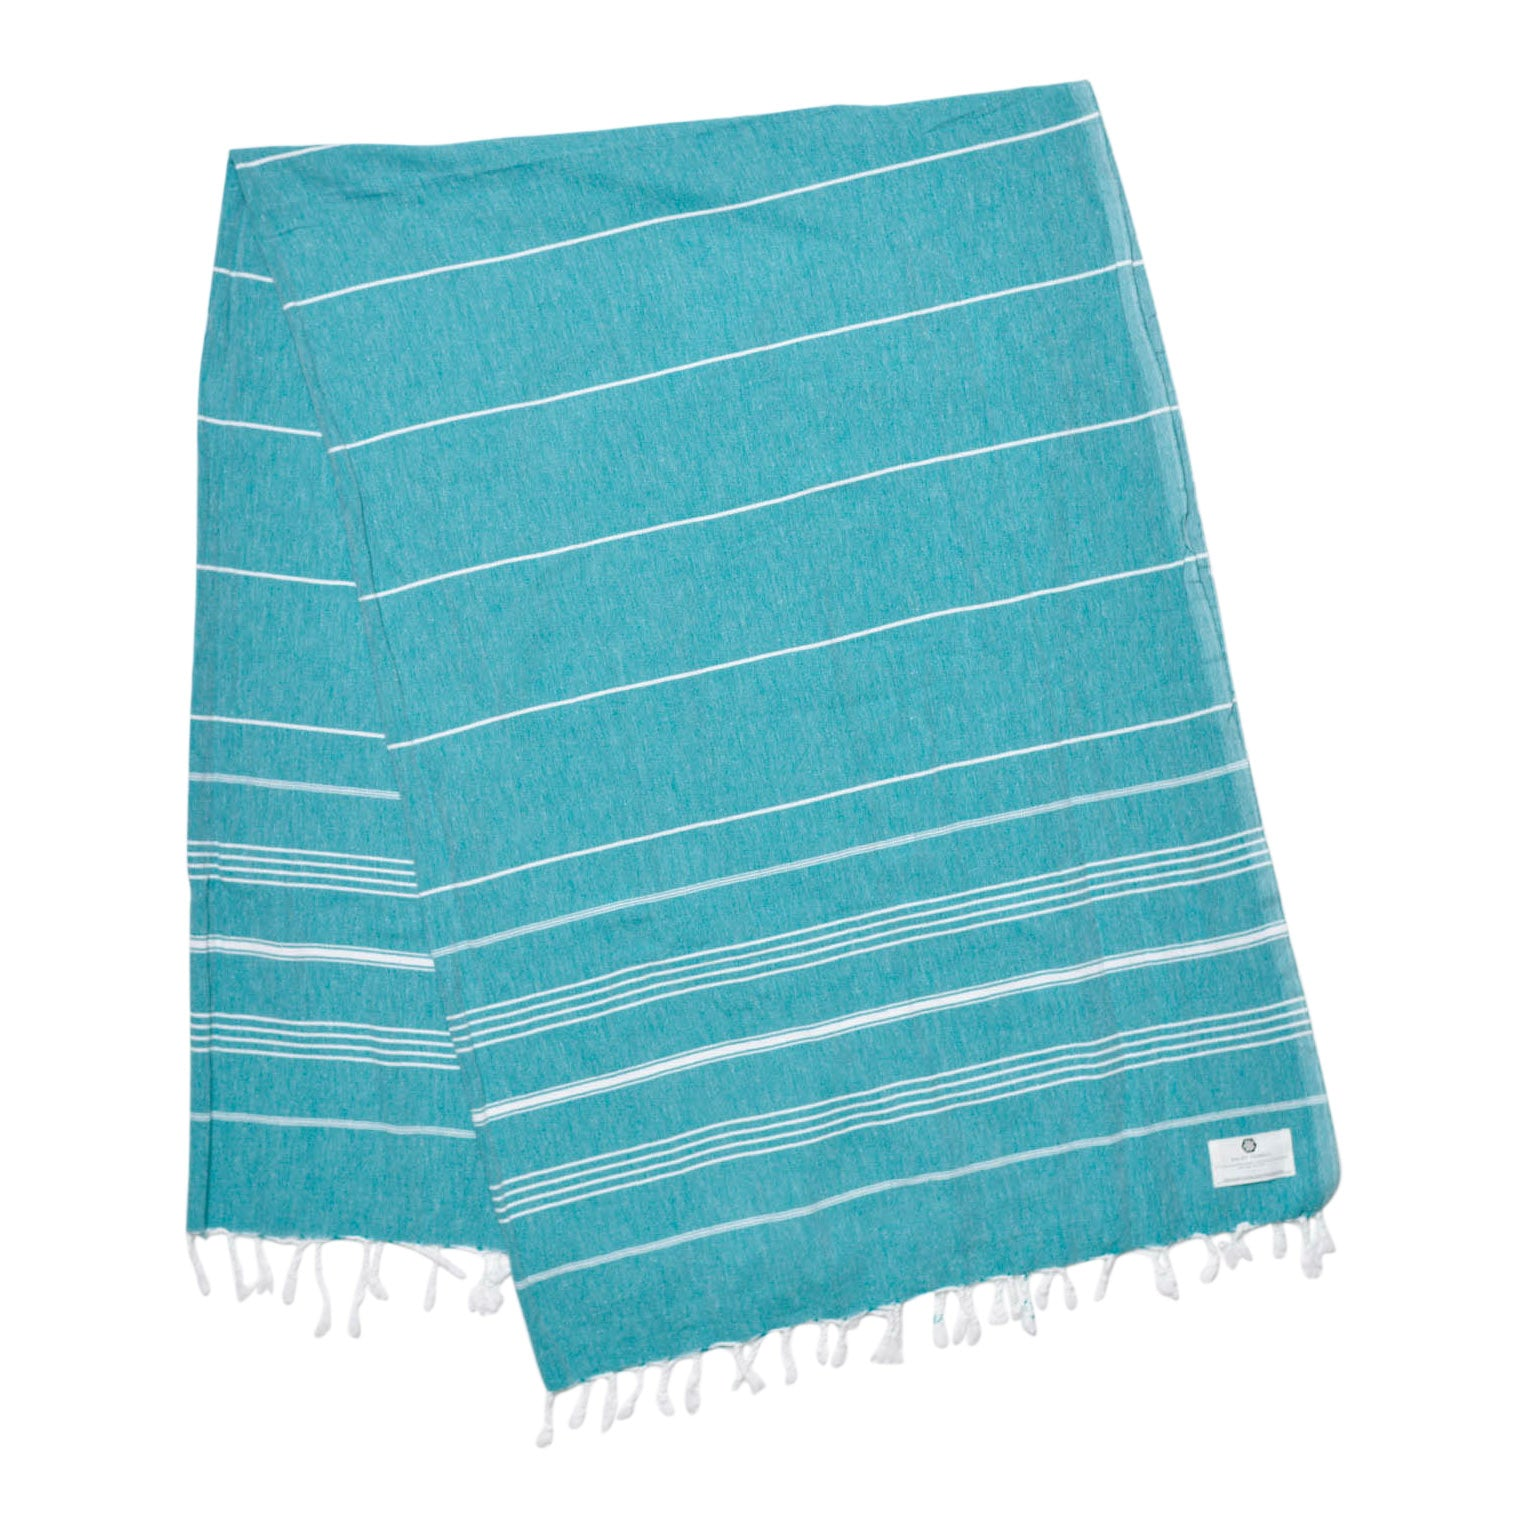 Luna XL Towel